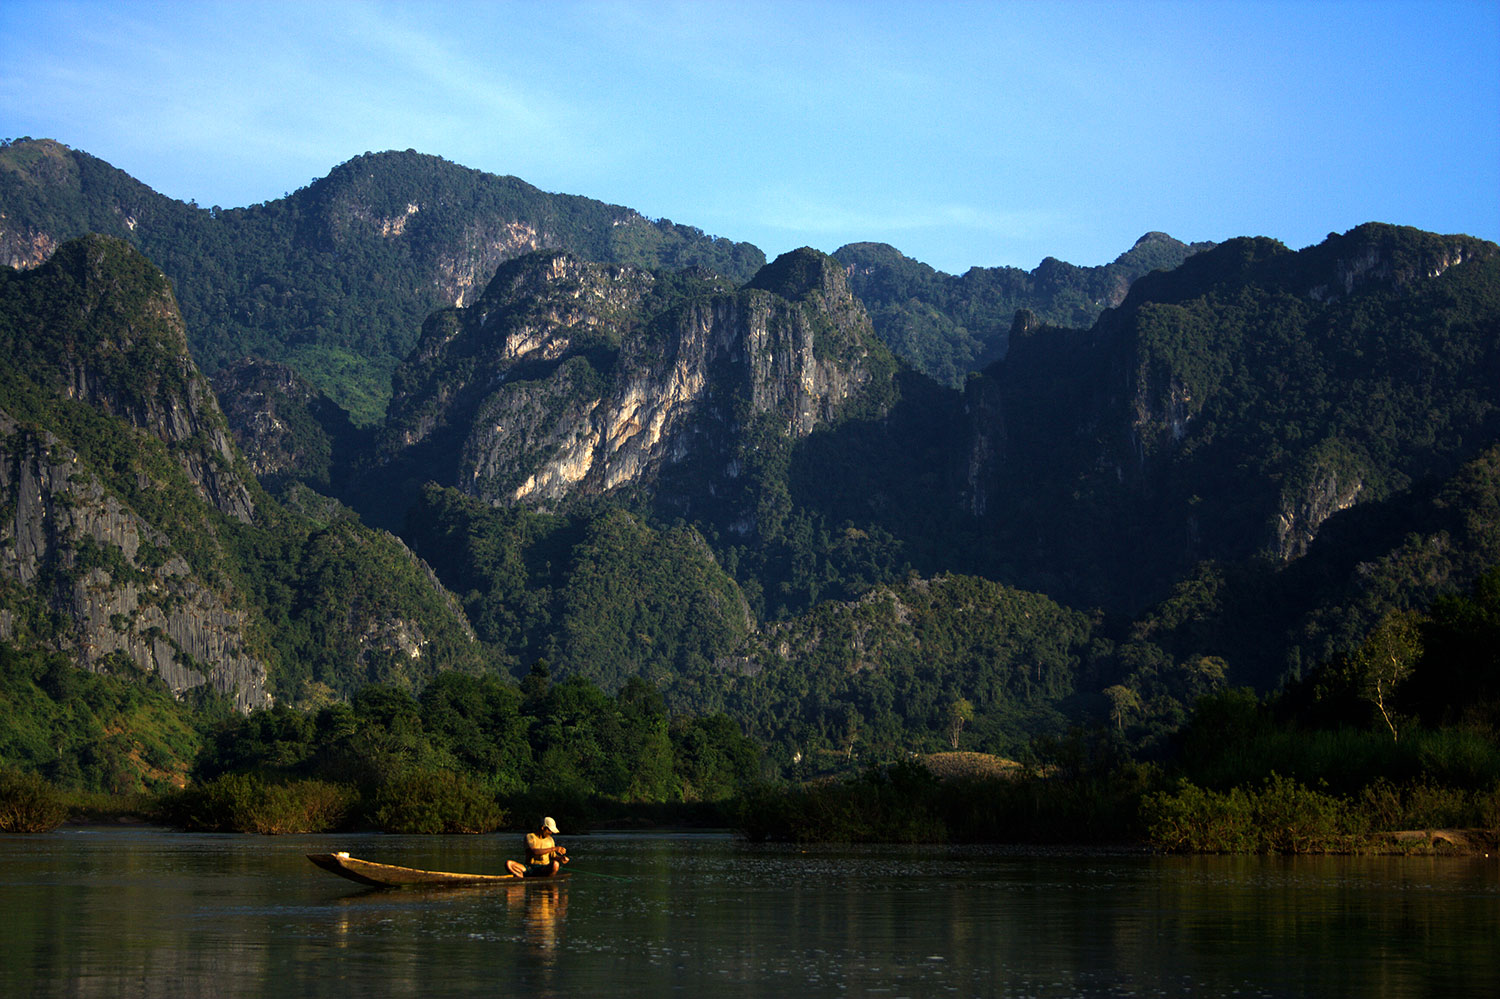 Fisherman on Mekong, Laos